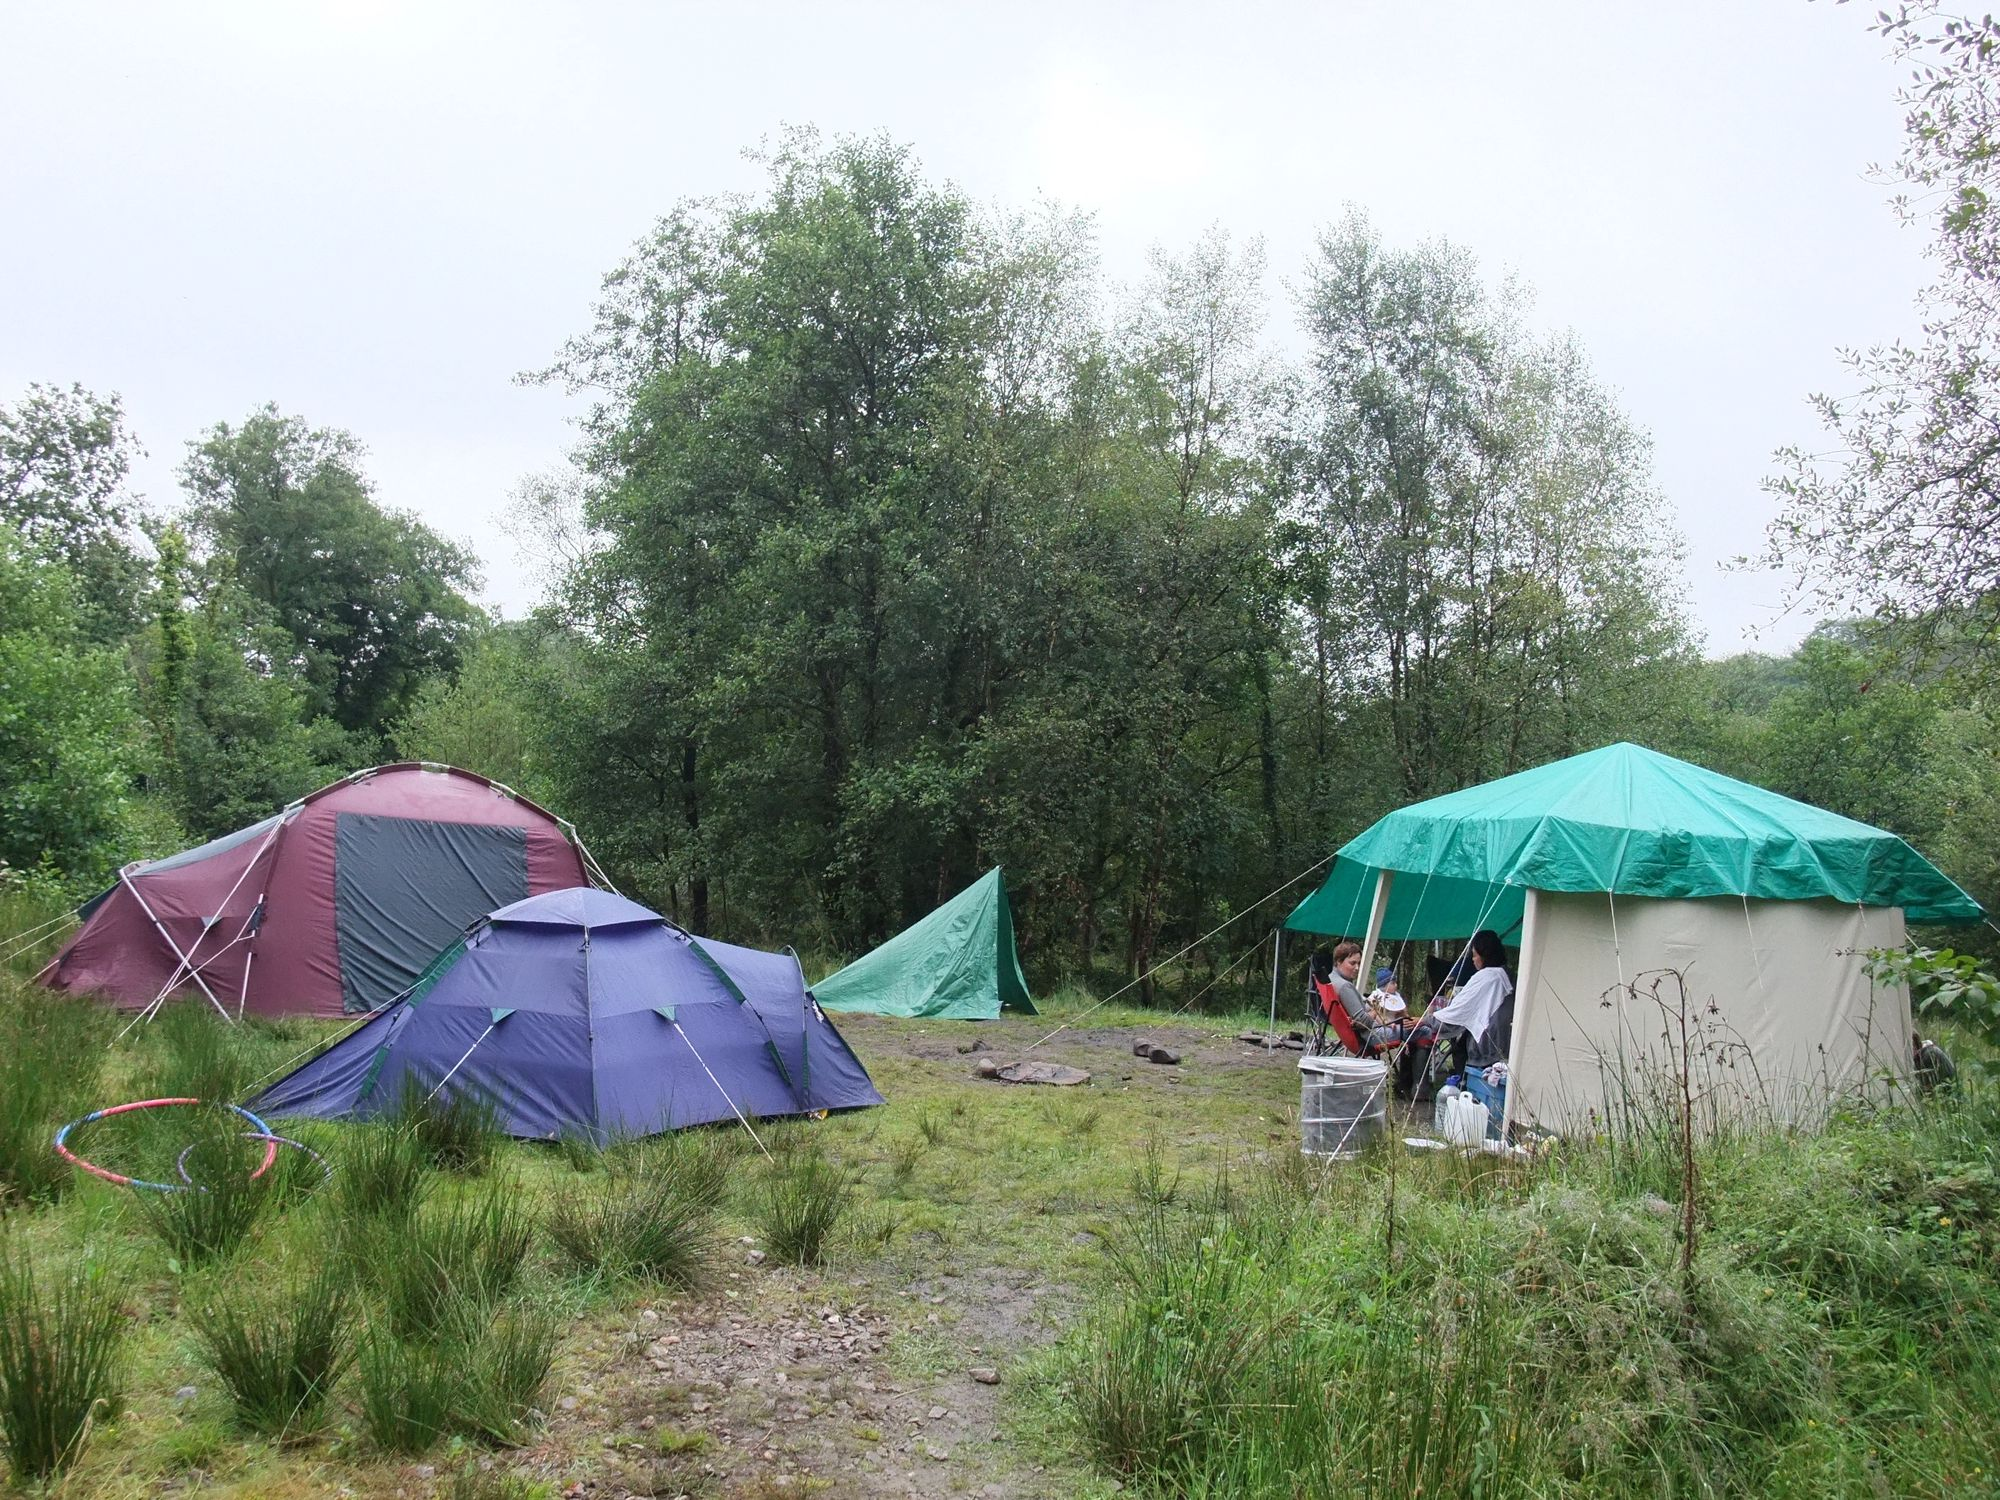 You can come to the Lone Wolf campsite and stay on one of its two small 'normal' fields if you like.